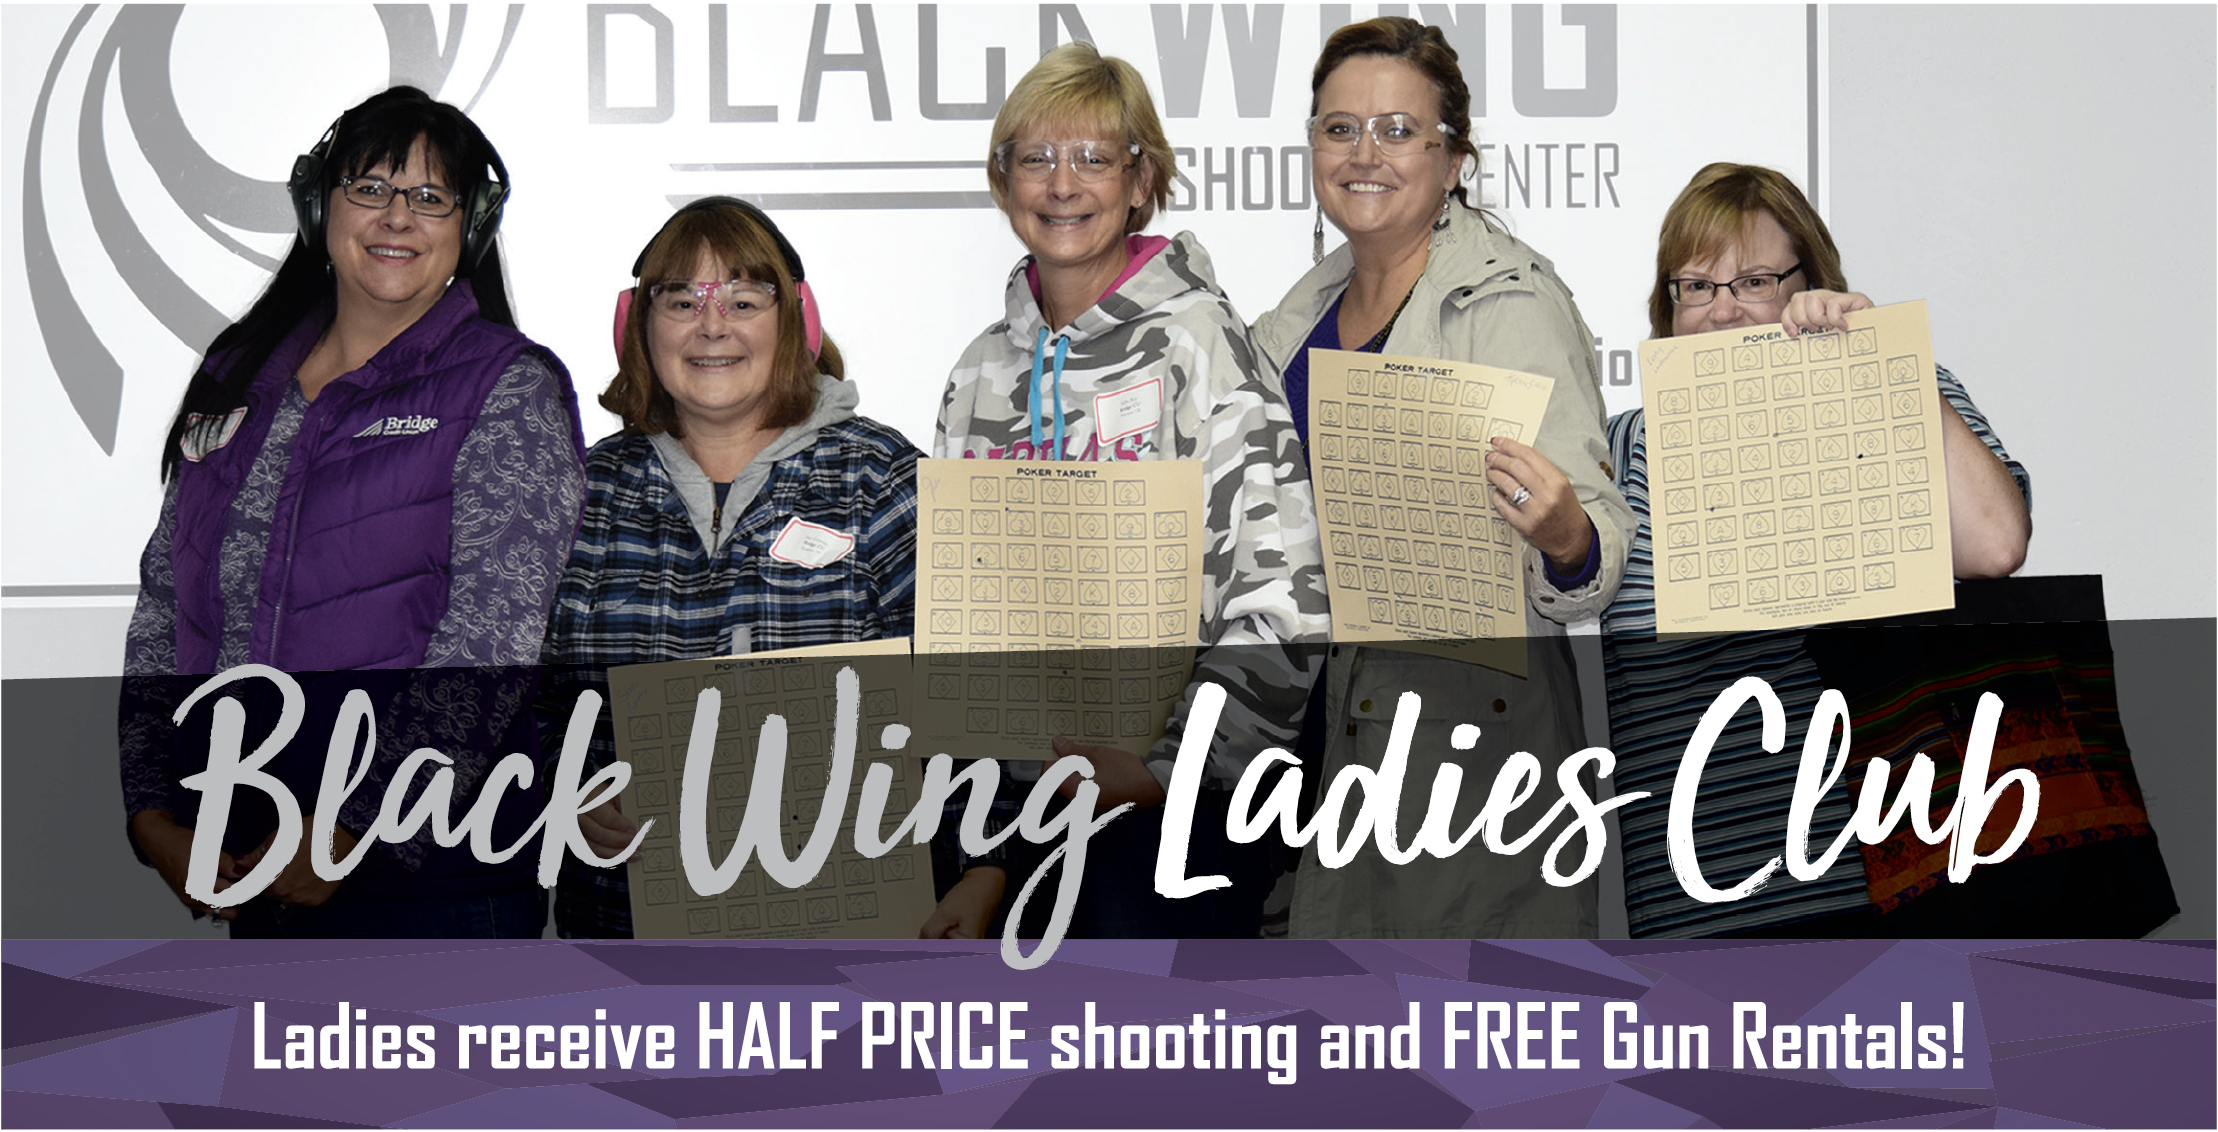 Black Wing Ladies Club